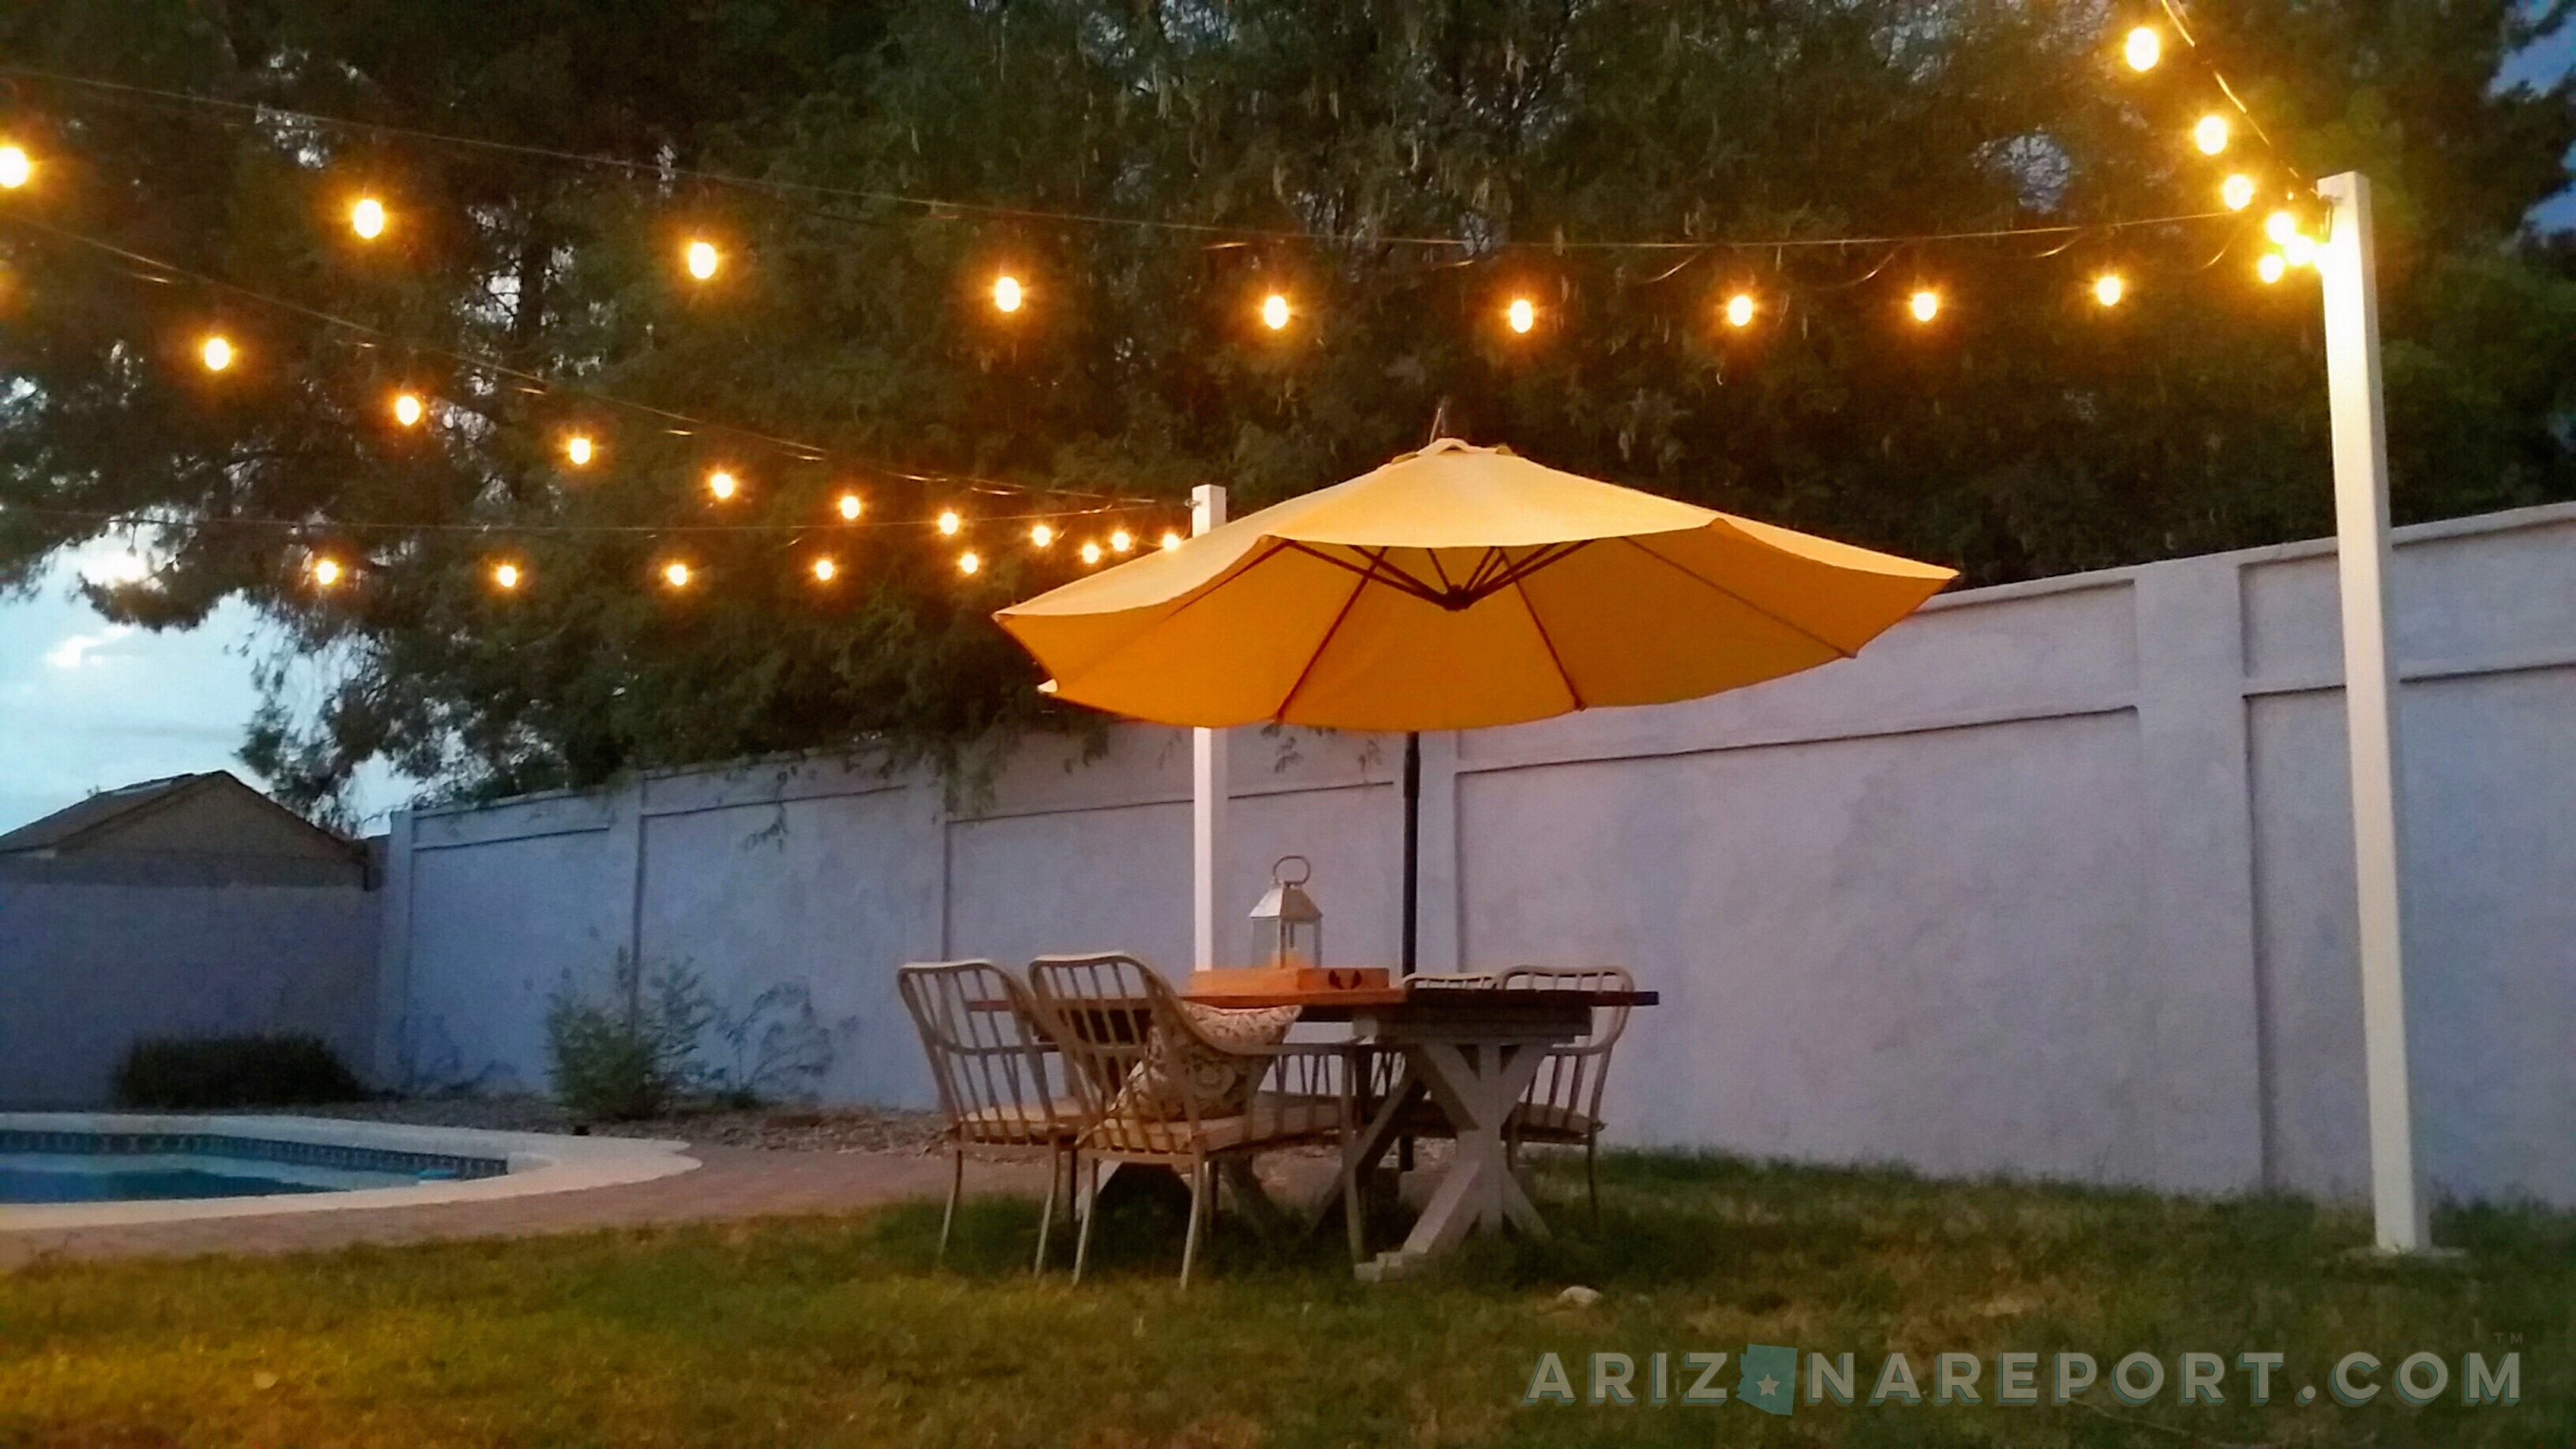 How To Hang String Lights And Cafe Lights | The Arizona Report™ Within Hanging Outdoor Cafe Lights (#7 of 15)